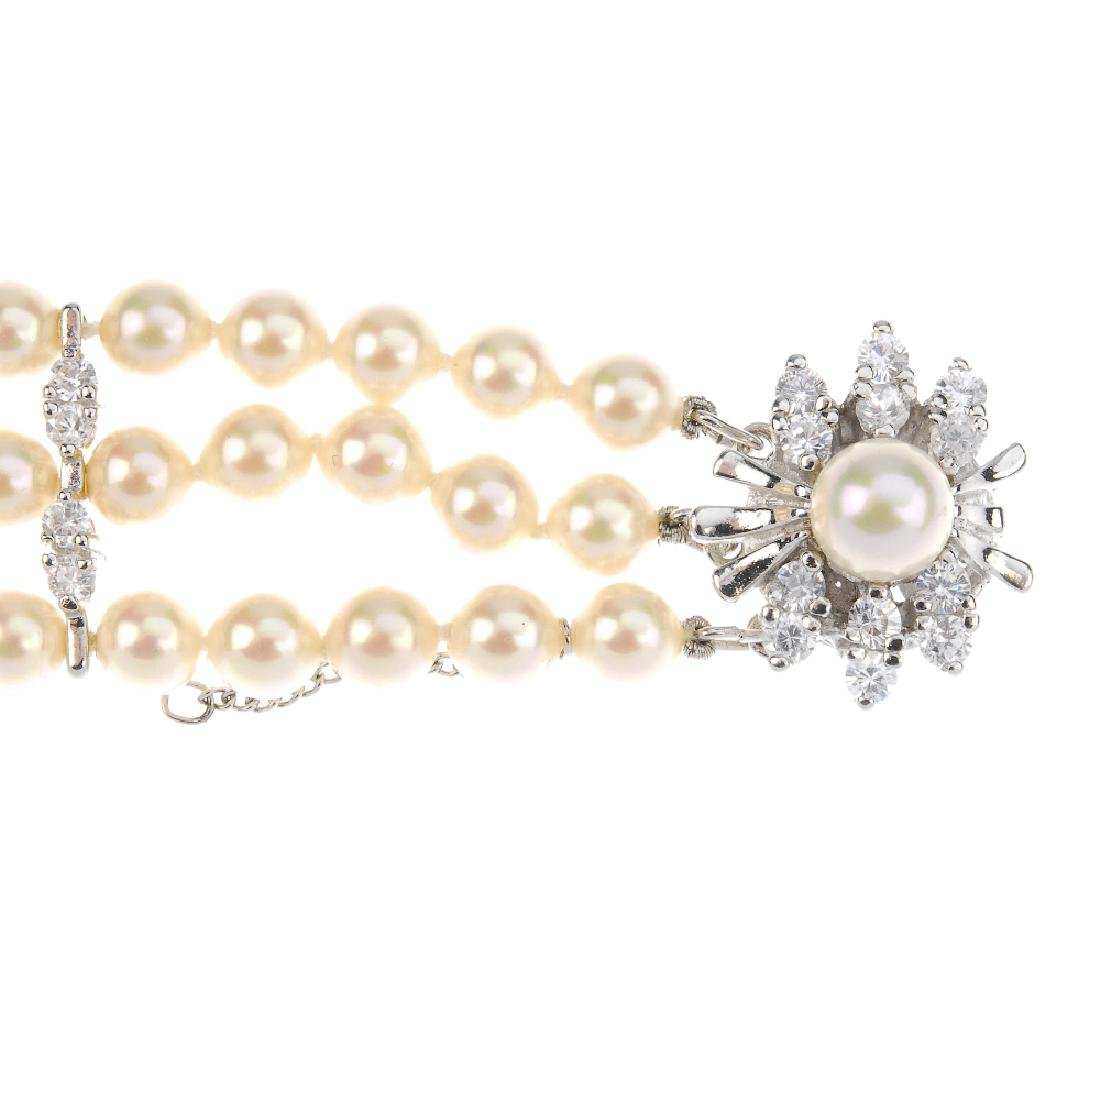 A paste and imitation pearl bracelet. The three rows of